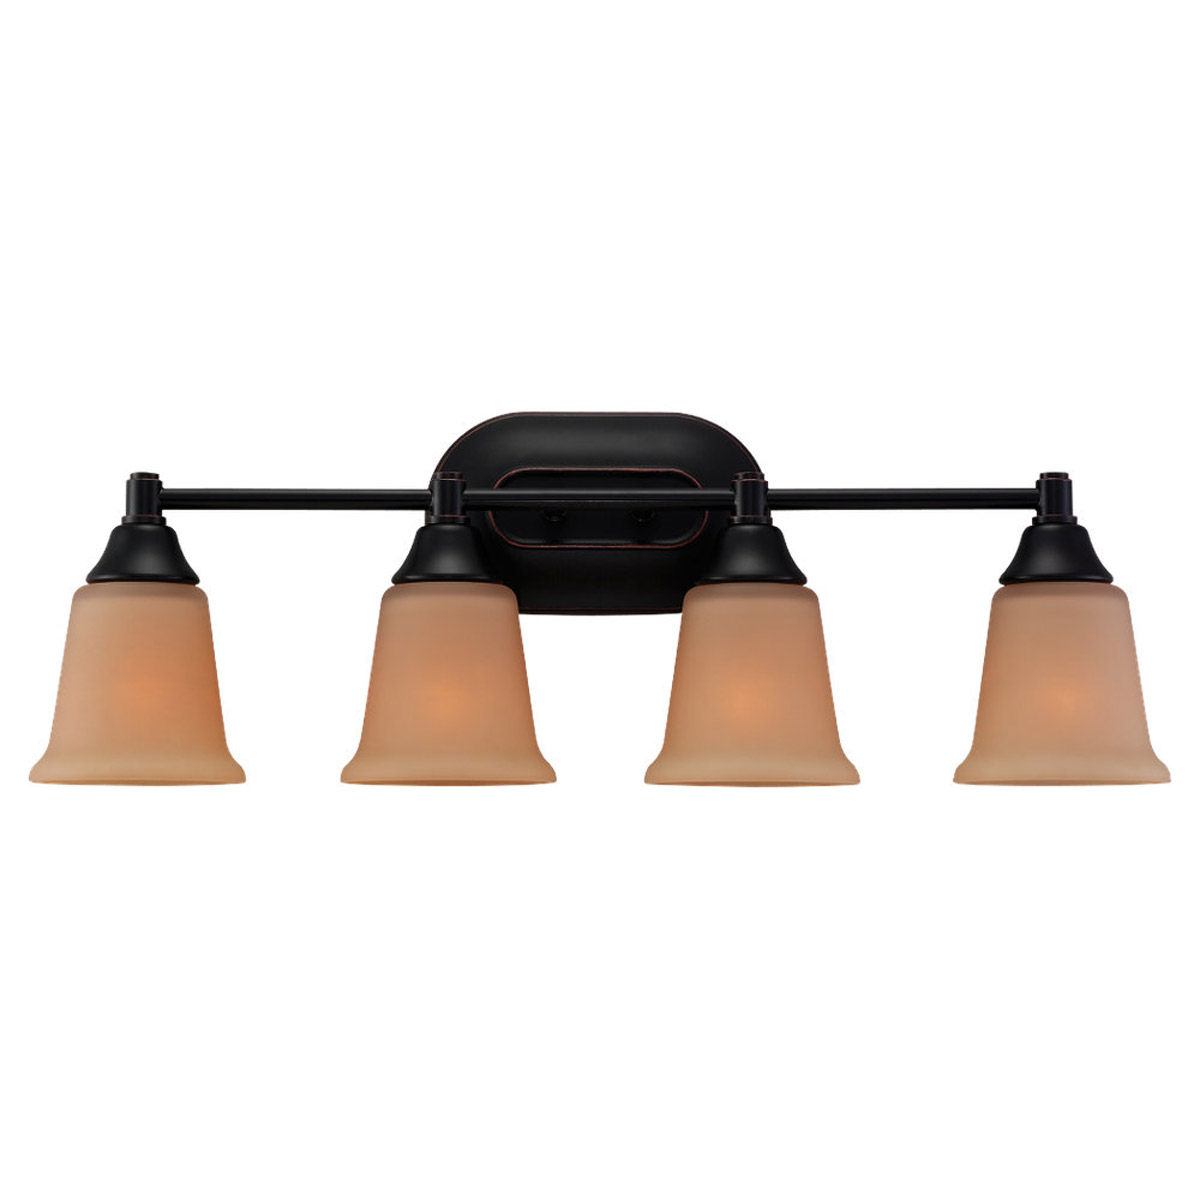 Sea Gull Lighting Belair 4 Light Fluorescent Wall/Bath/Vanity in Vintage Brown 44793BLE-862 photo